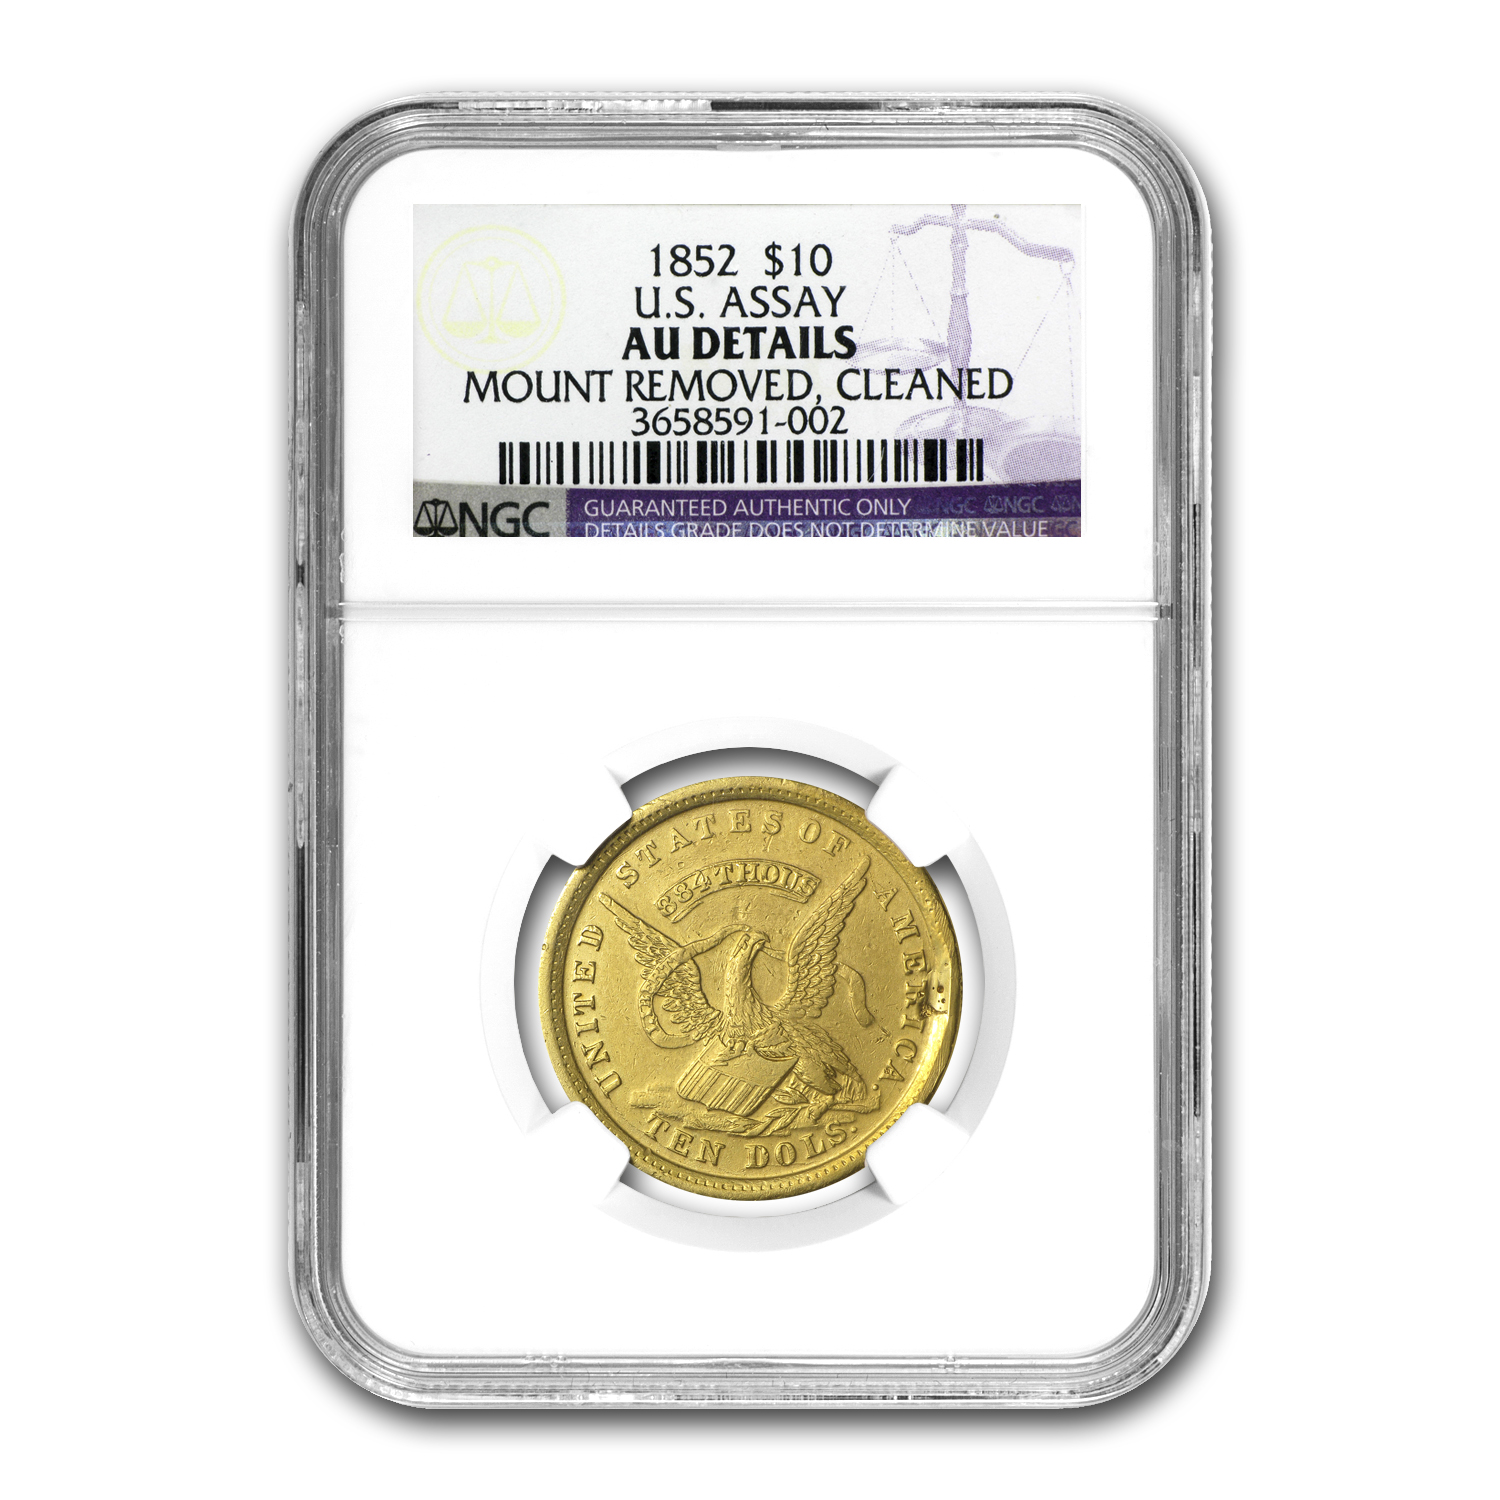 1852 $10 Liberty Gold Eagle U.S. Assay - AU Details NGC